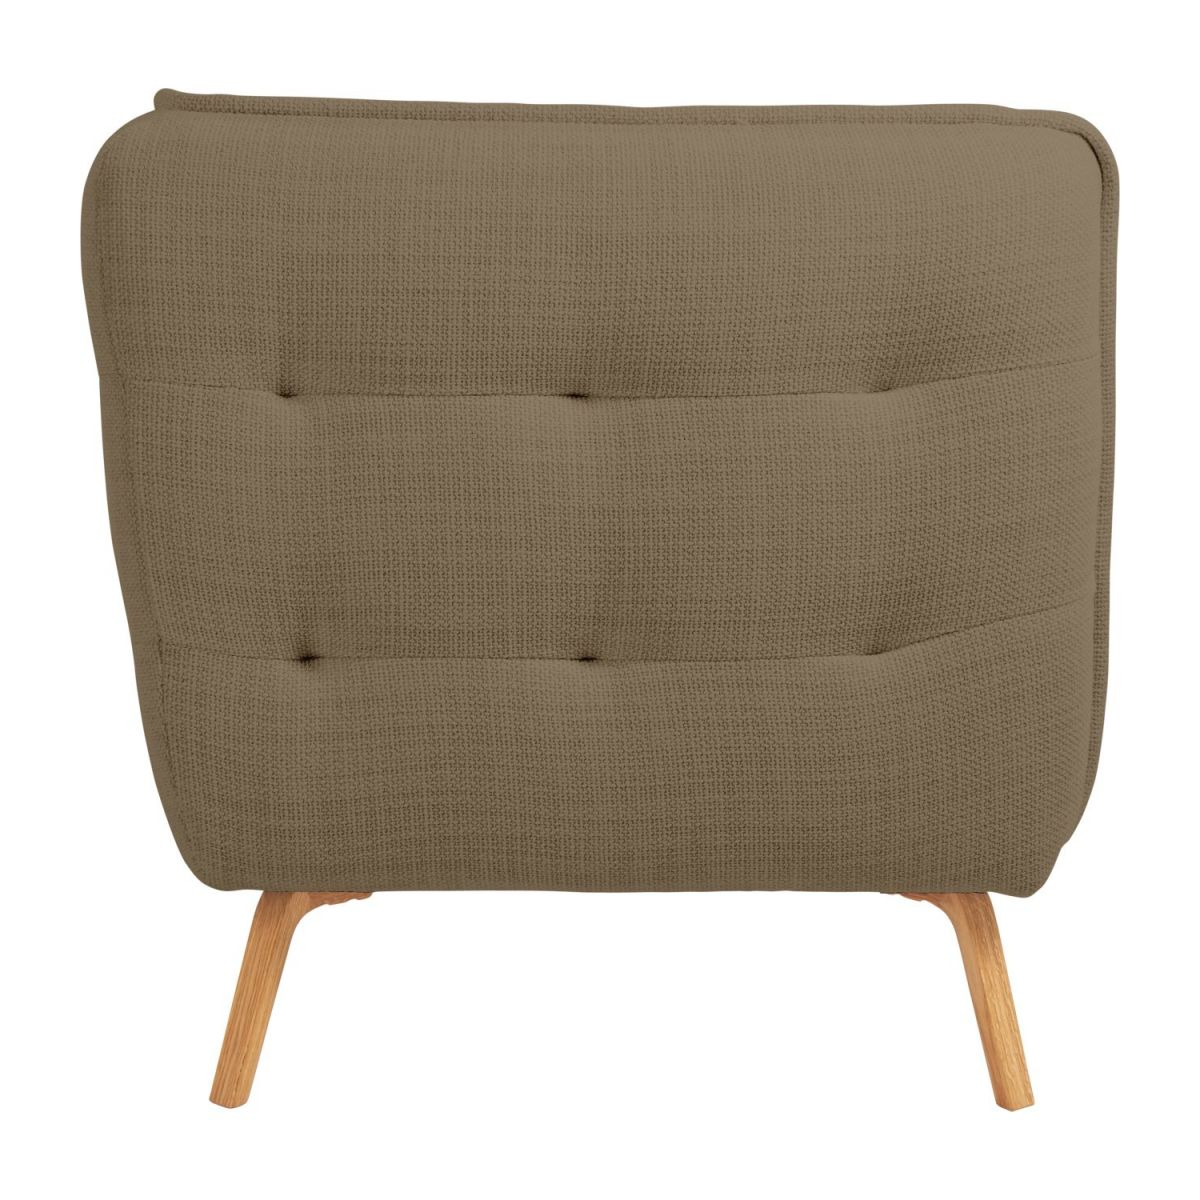 2 seater sofa in Fasoli fabric, jatoba brown and oak legs n°5